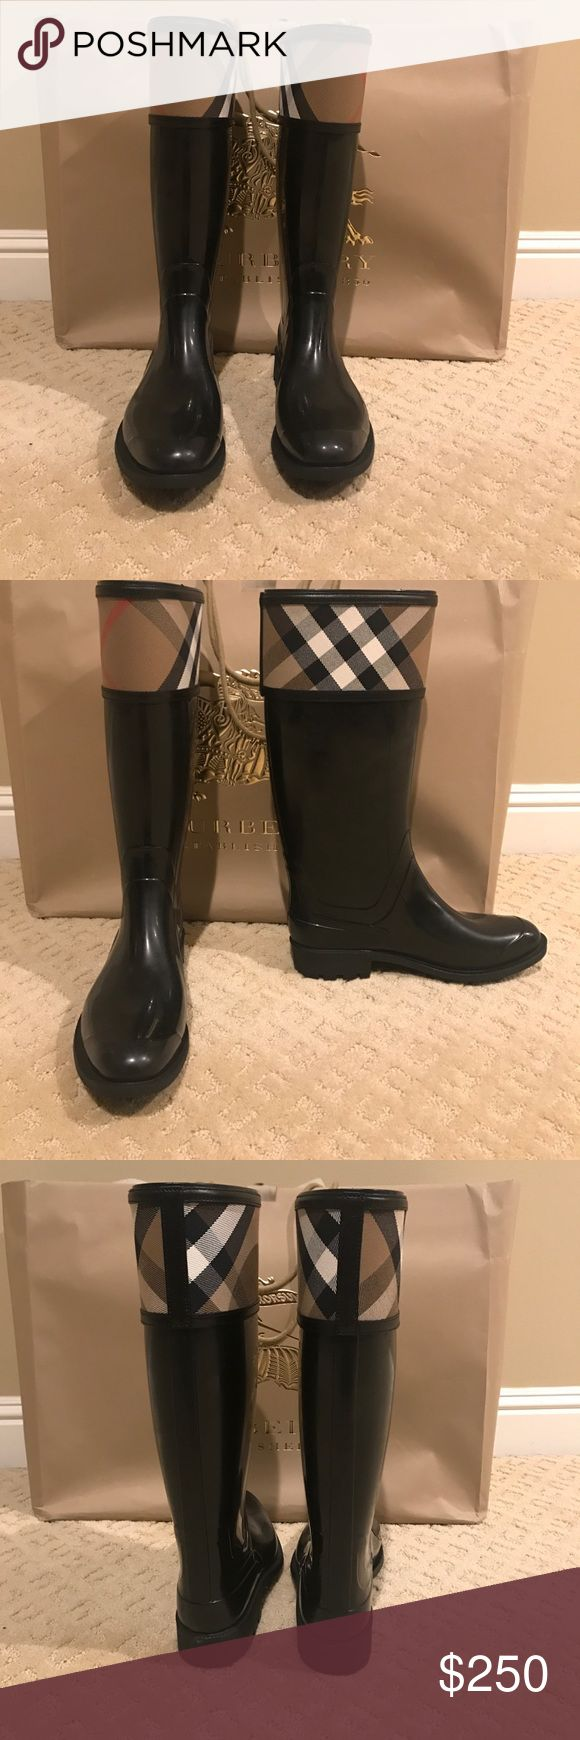 Burberry Crosshill Rain Boot (Women) Never worn. Perfect condition. Comes with box and bag. Burberry Shoes Winter & Rain Boots